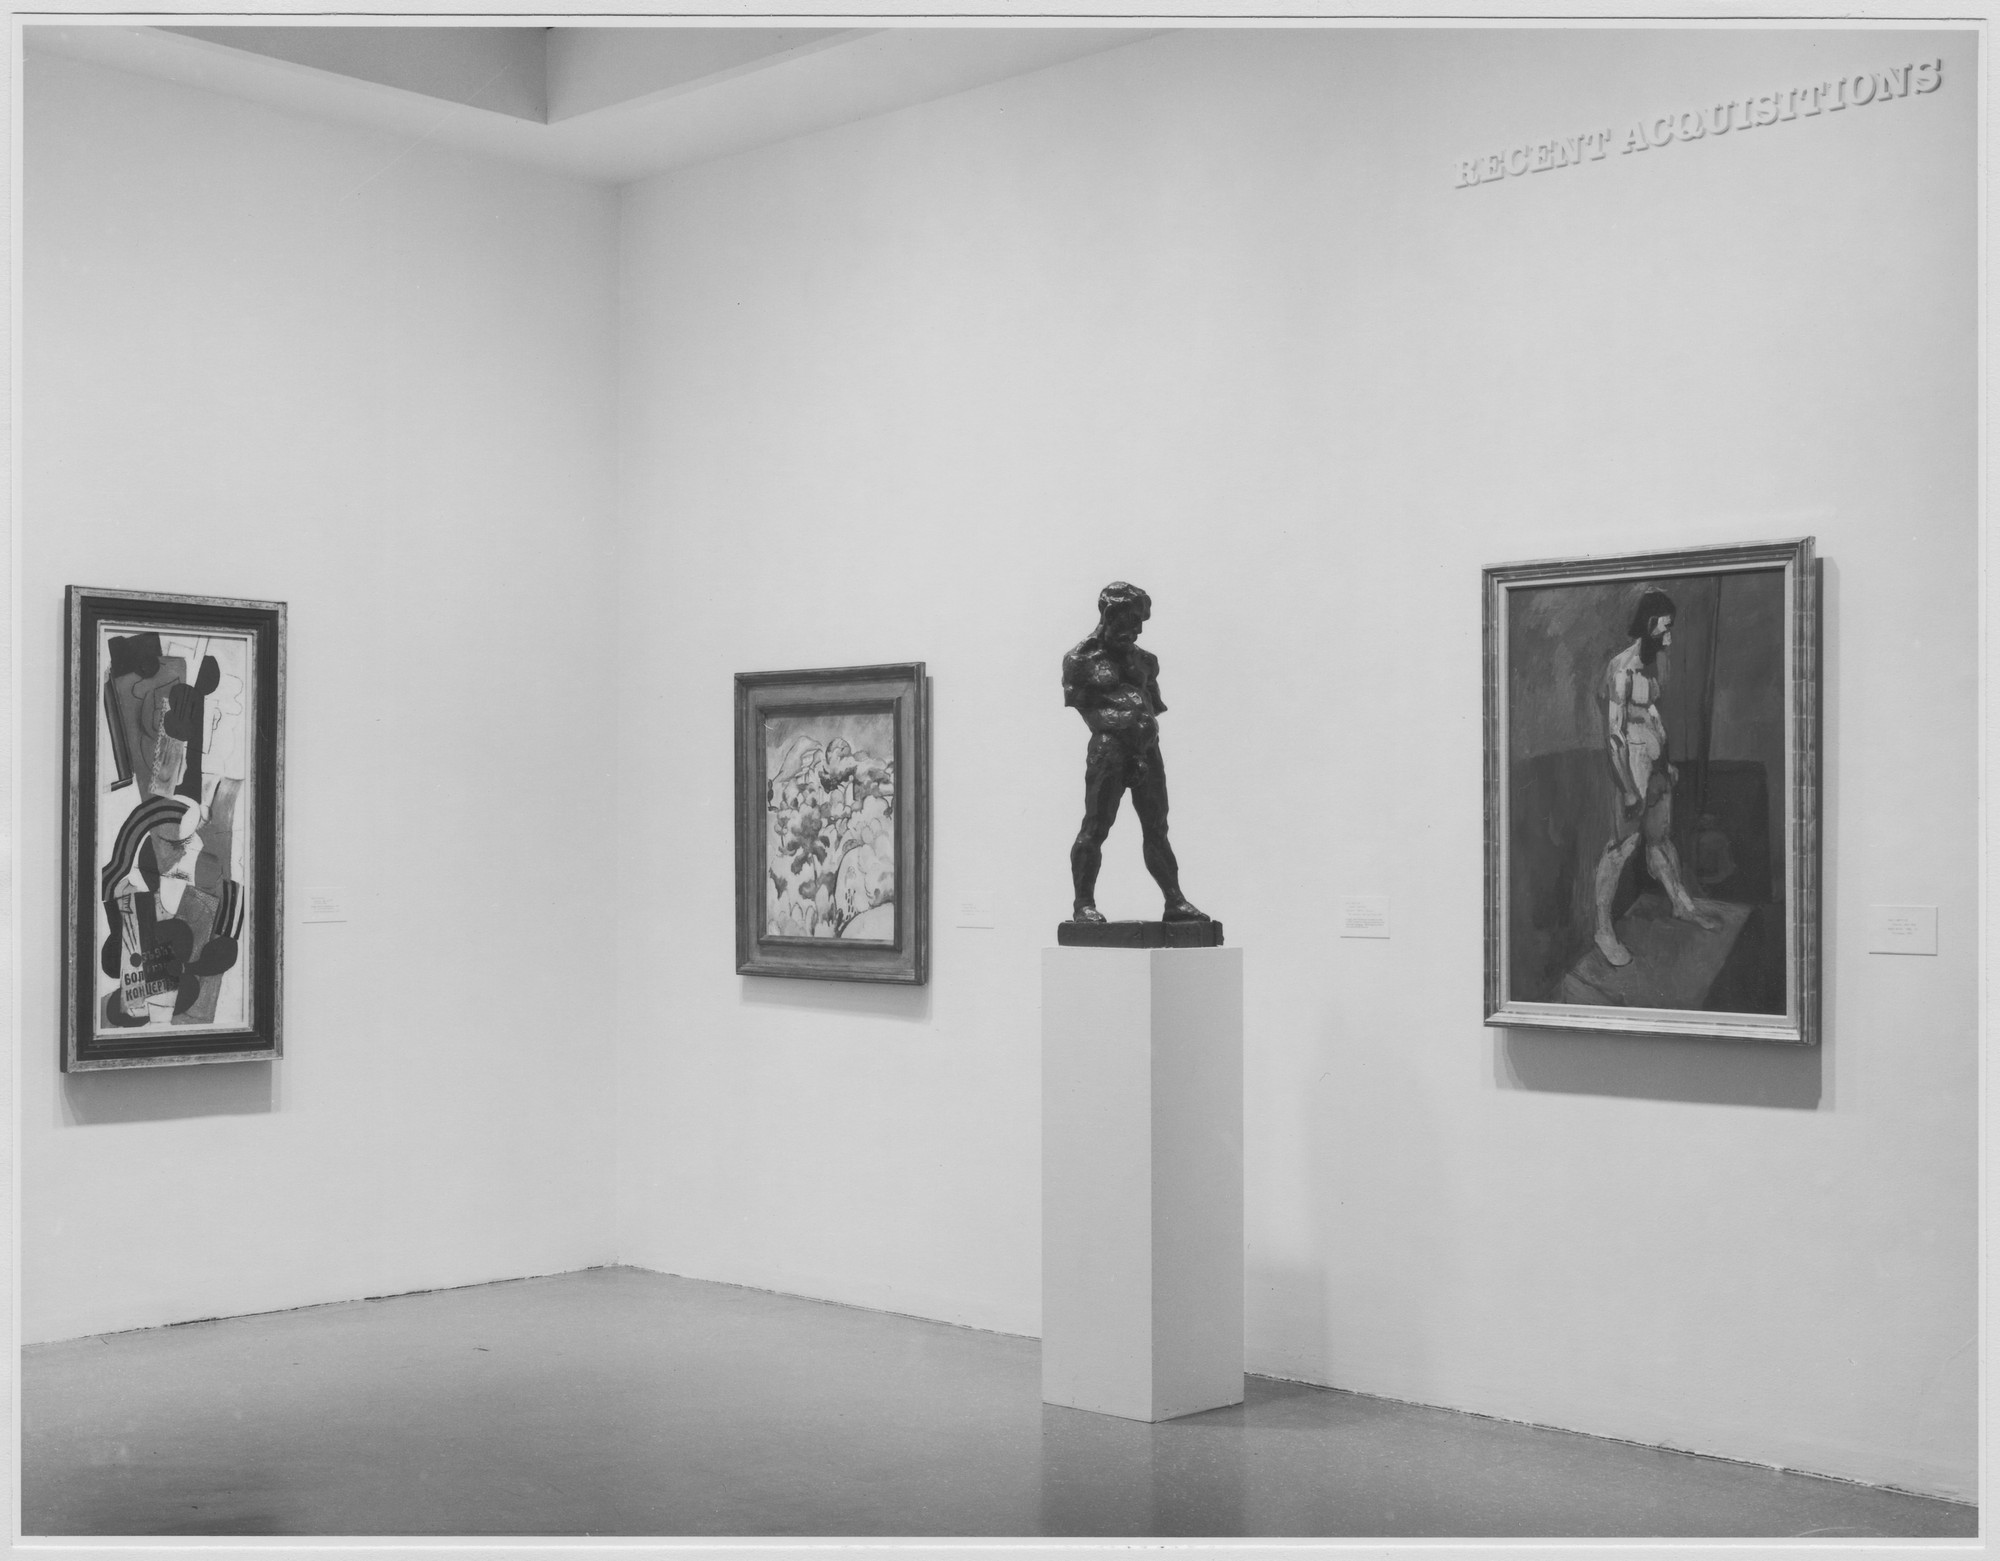 "Installation view of the exhibition, ""Recent Acquisitions Painting and Sculpture."" November 22, 1976–March 1, 1977. Photographic Archive. The Museum of Modern Art Archives, New York. IN1156.1. Photograph by Katherine Keller."